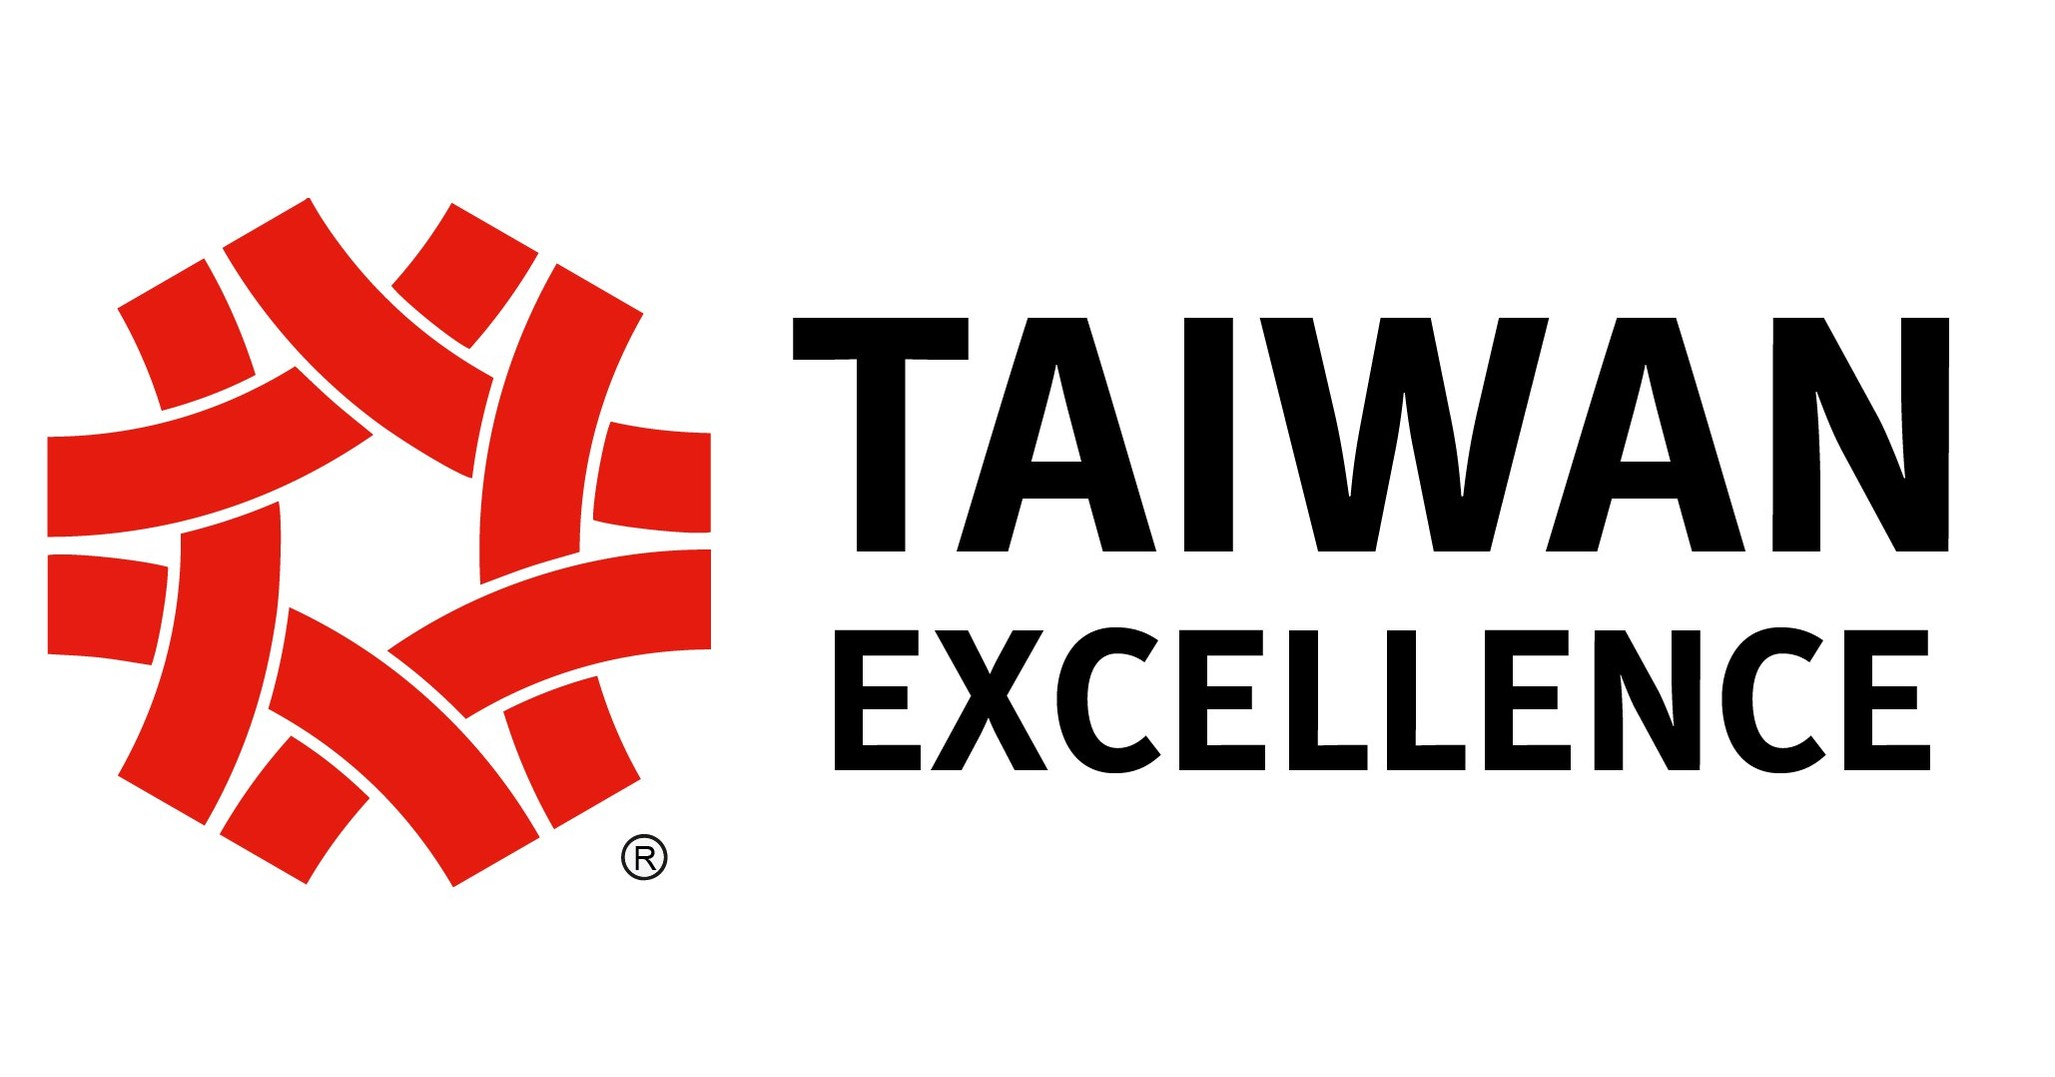 Start the Christmas Vibe with Taiwan Excellence - TipsGeeks